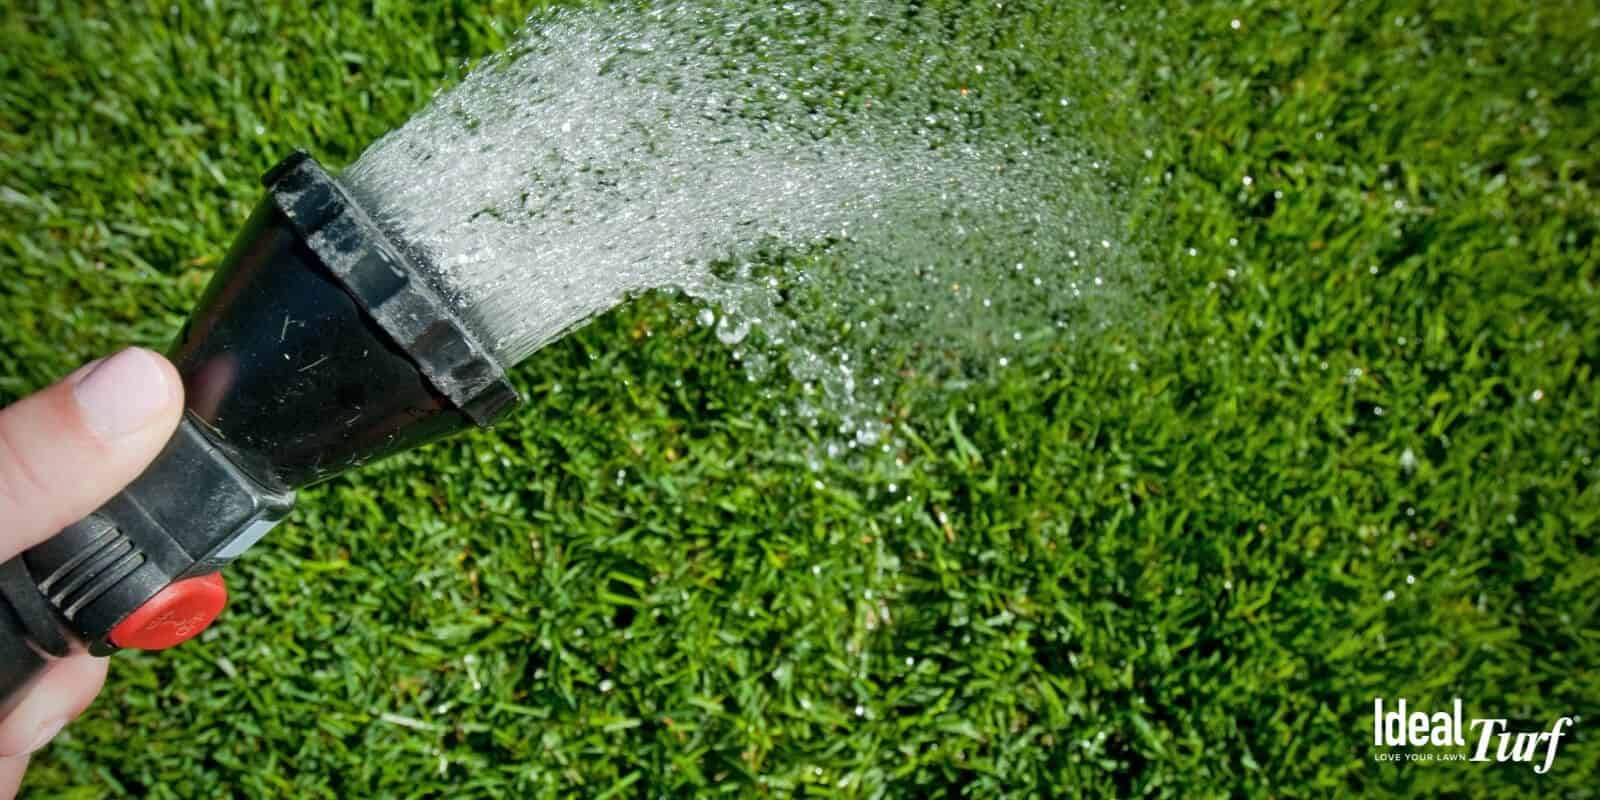 16. Is Artificial Turf Easy to Clean